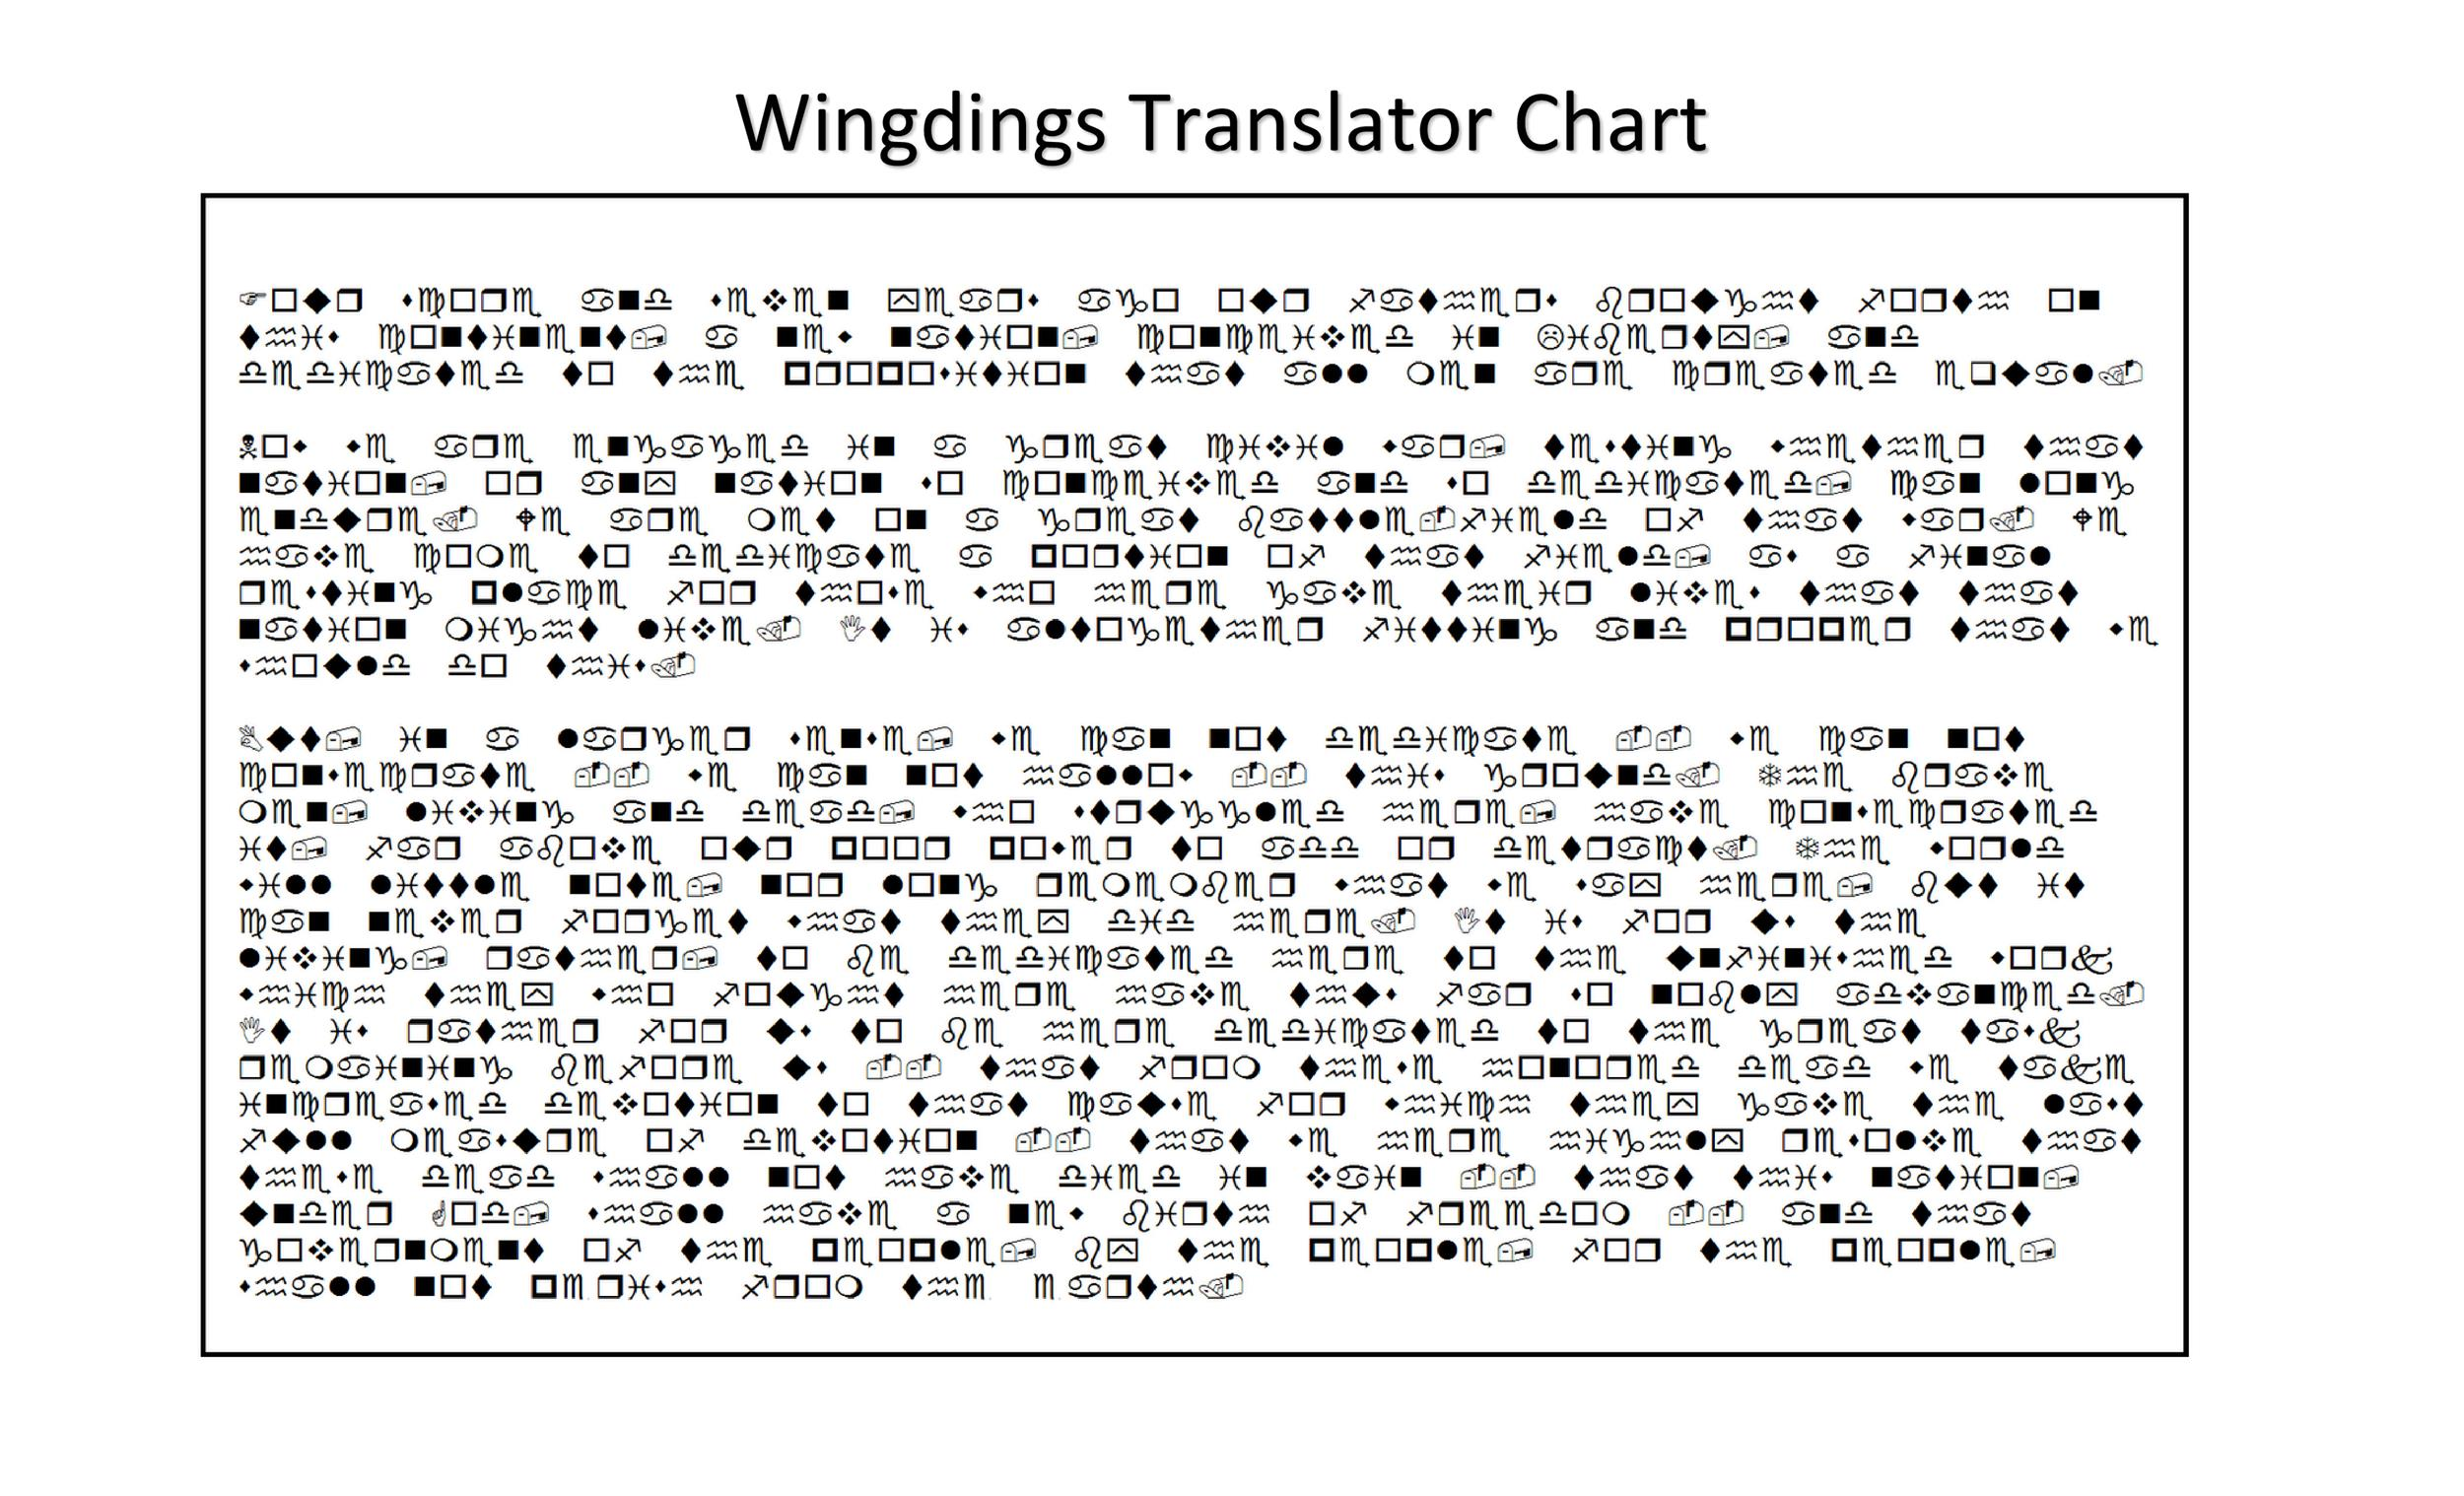 Free Wingdings Translator Charts  Template Lab